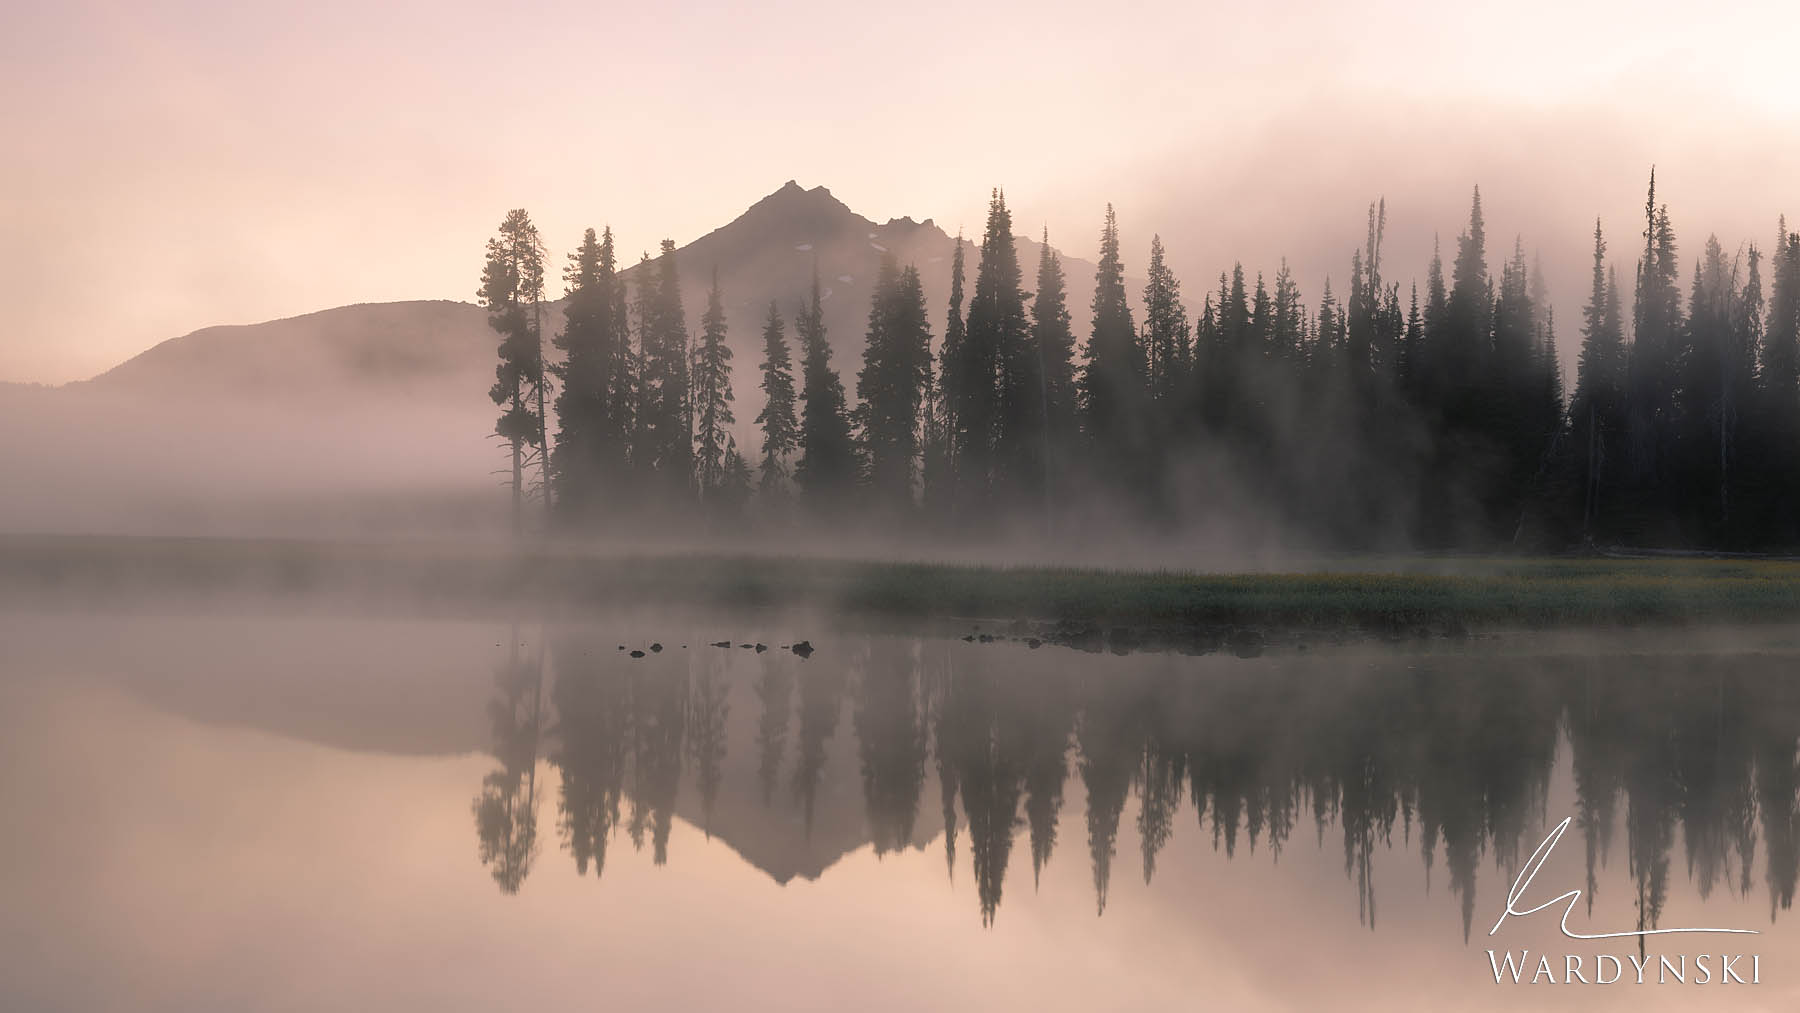 Fine Art Print | Limited Edition of 50  Mist rolls off the water of Sparks lake in Central Oregon during sunrise. This classic...